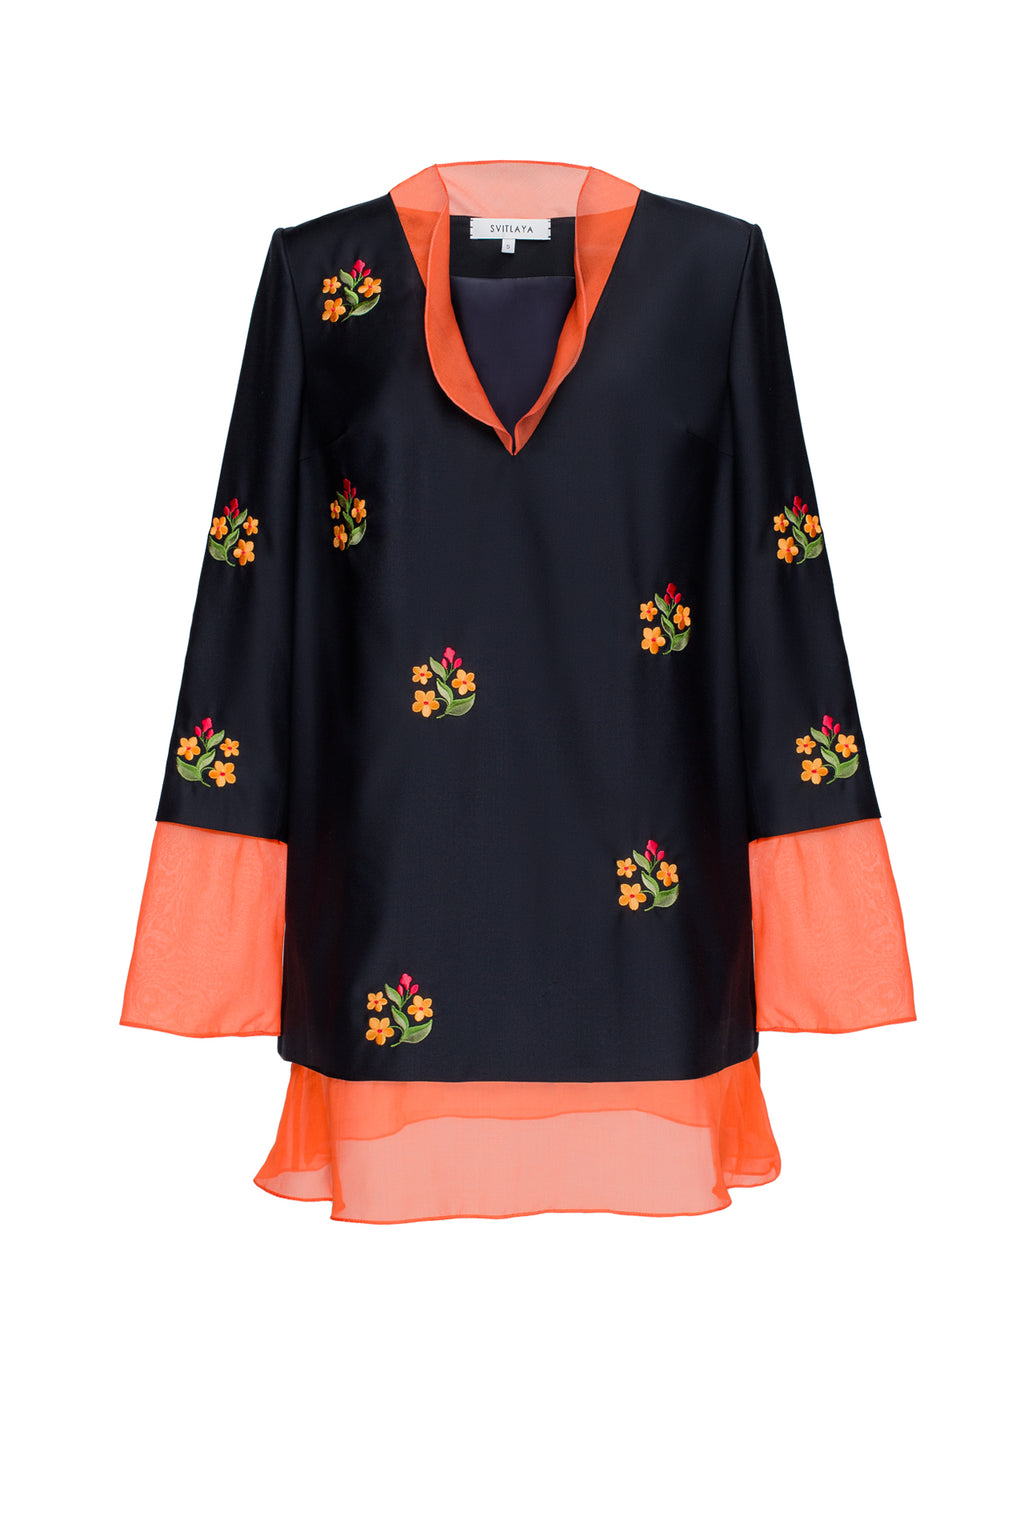 FORGET-ME-NOTS tunic in black wool